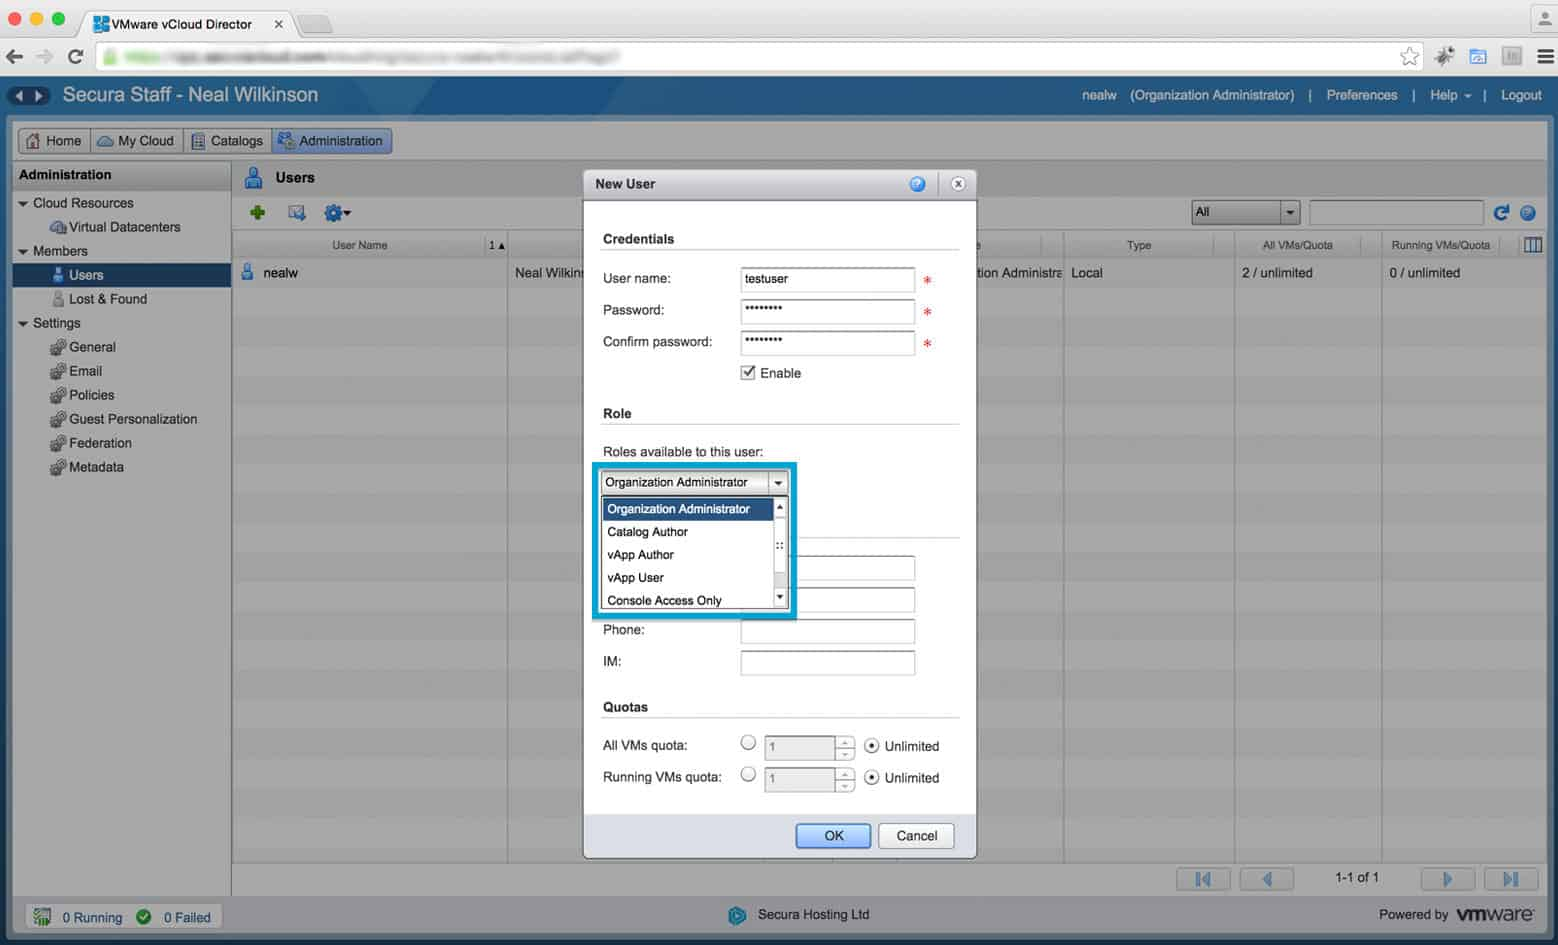 Complete the User Information and Select Their Role